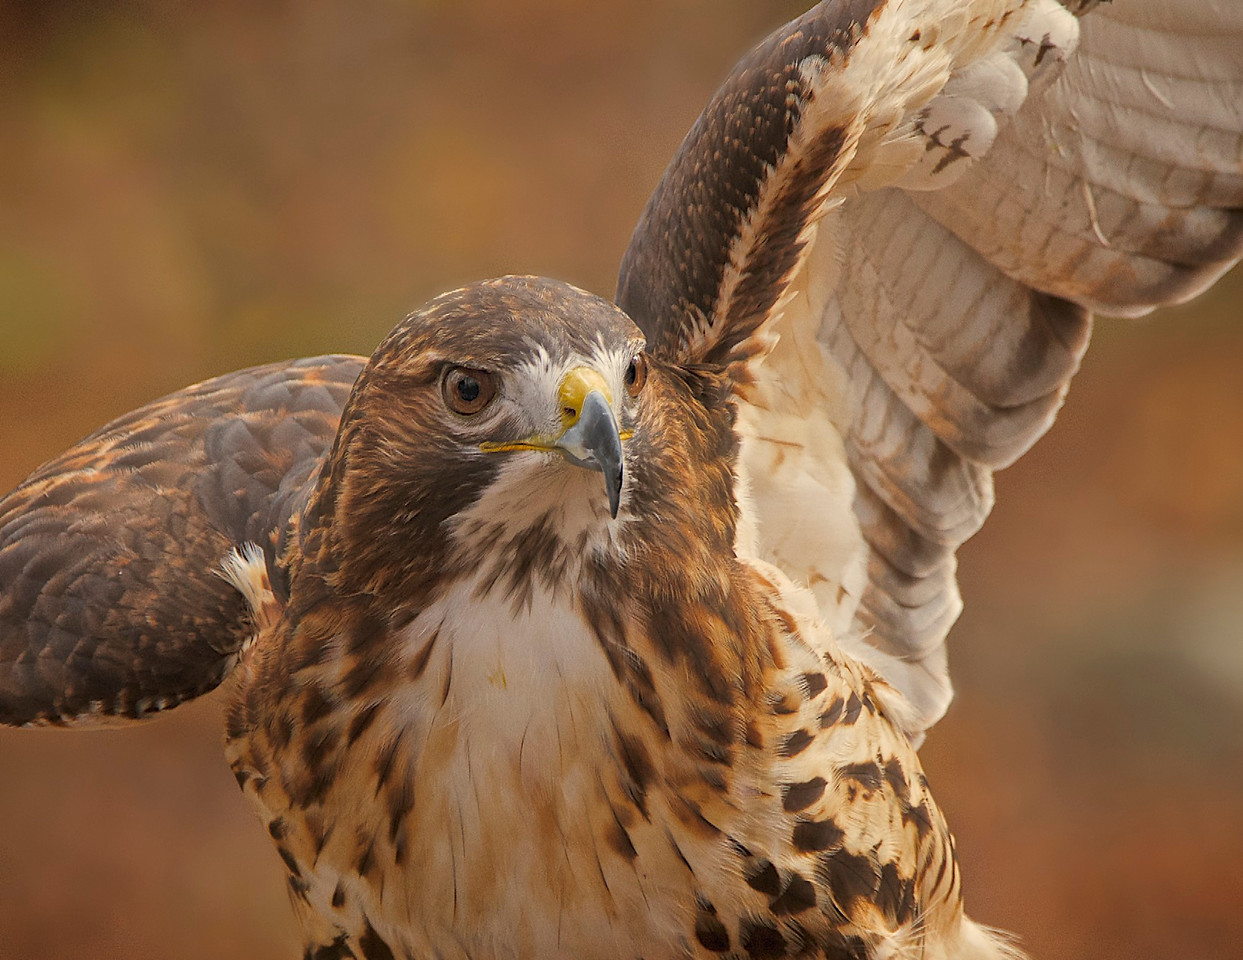 A rescued and rehabilitated red tailed hawk shows off her winds at Hawk Mountain in Pennsylvania.